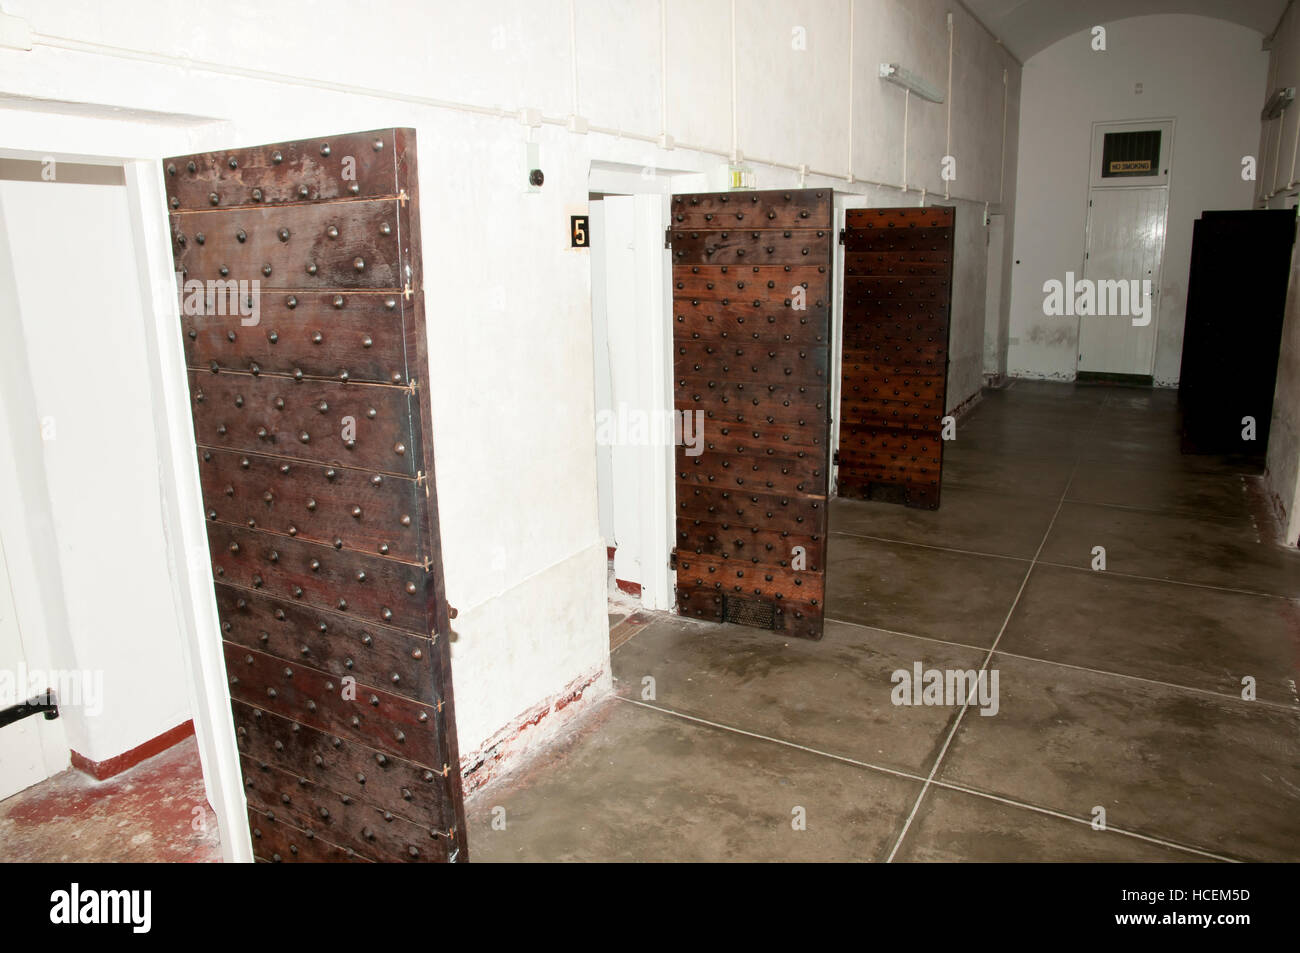 Confined Cells of Fremantle Old Prison - Australia - Stock Image